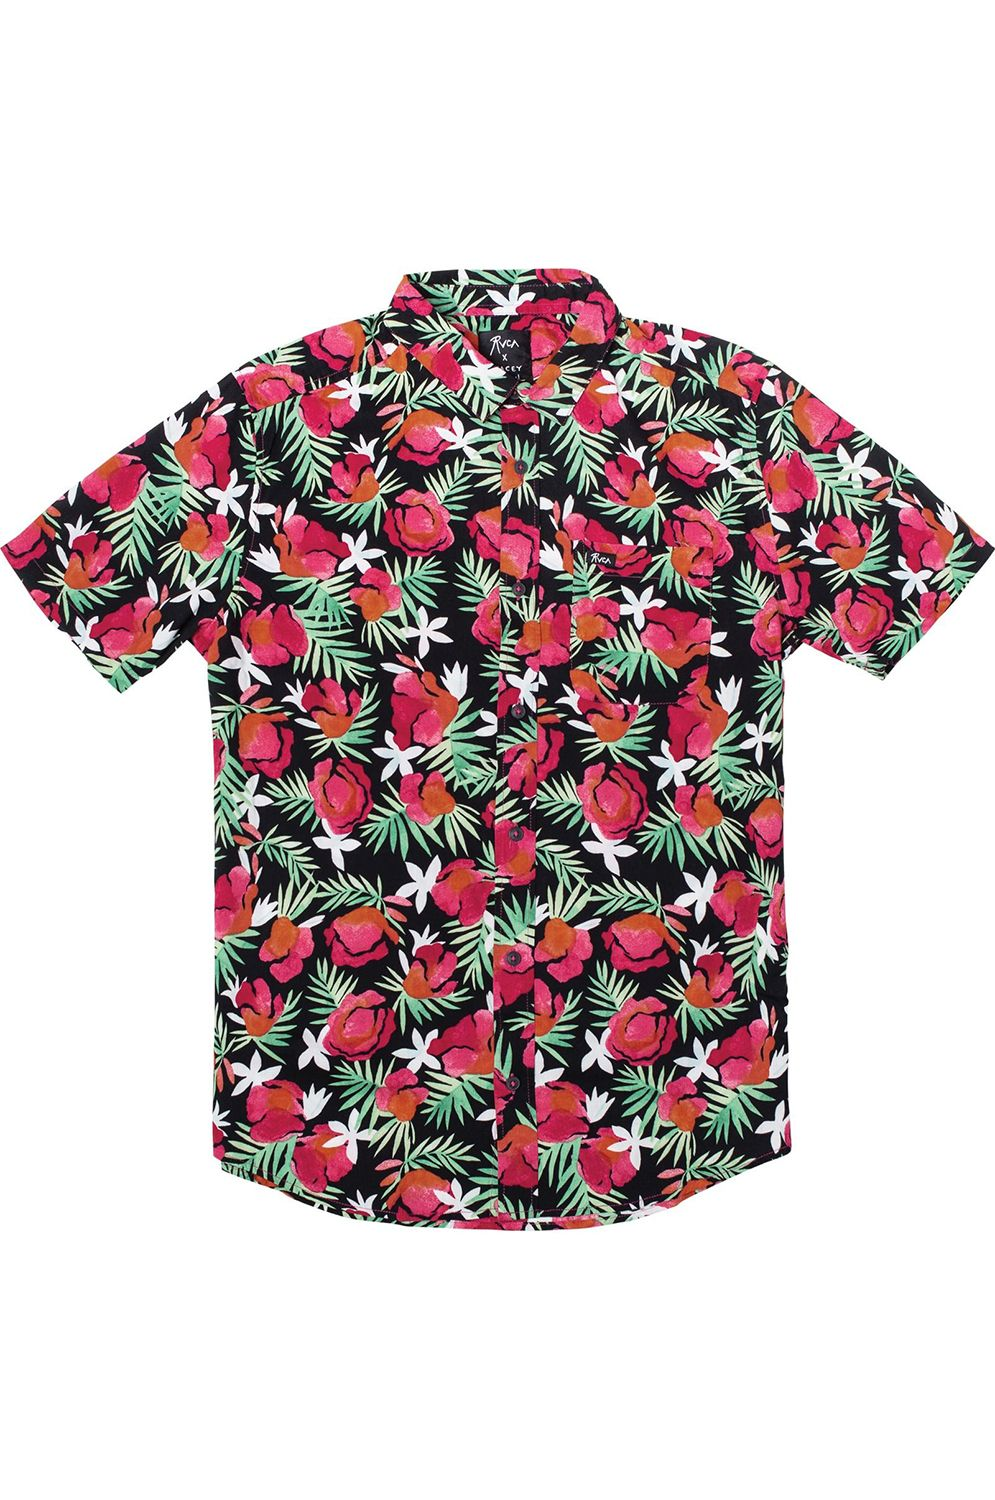 Camisa RVCA ROZICH SS STACEY ROZICH Floral